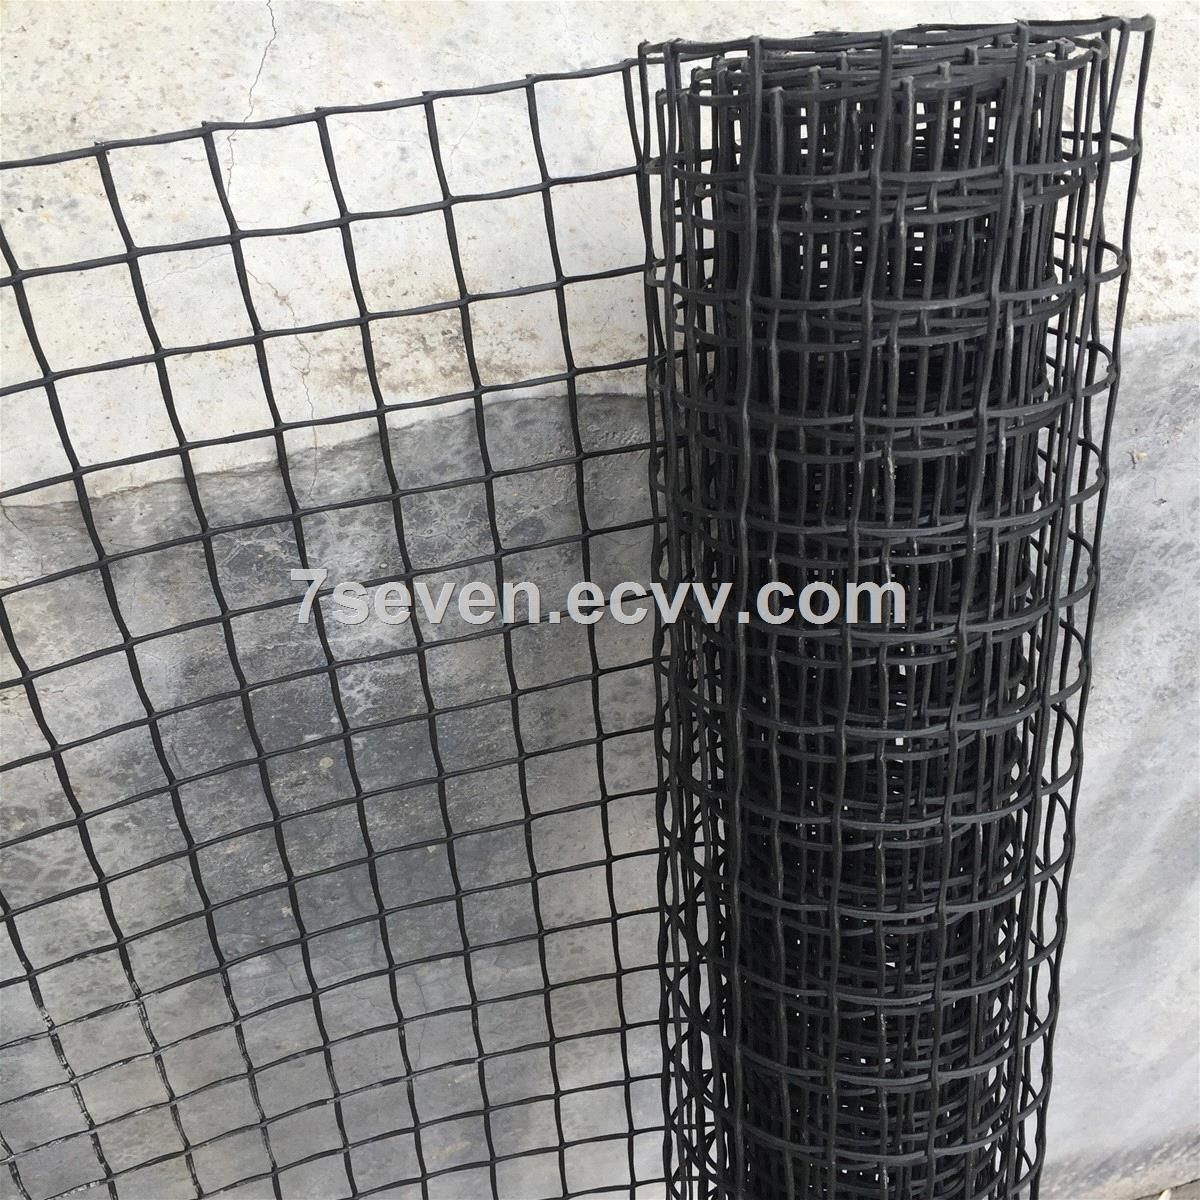 Factory Supply Multi Purpose Square Plastic Nets Gardening Fence For Climbing Plants Ss198513 China Square Mesh Ne Climbing Plants Deer Fence Glass Garden